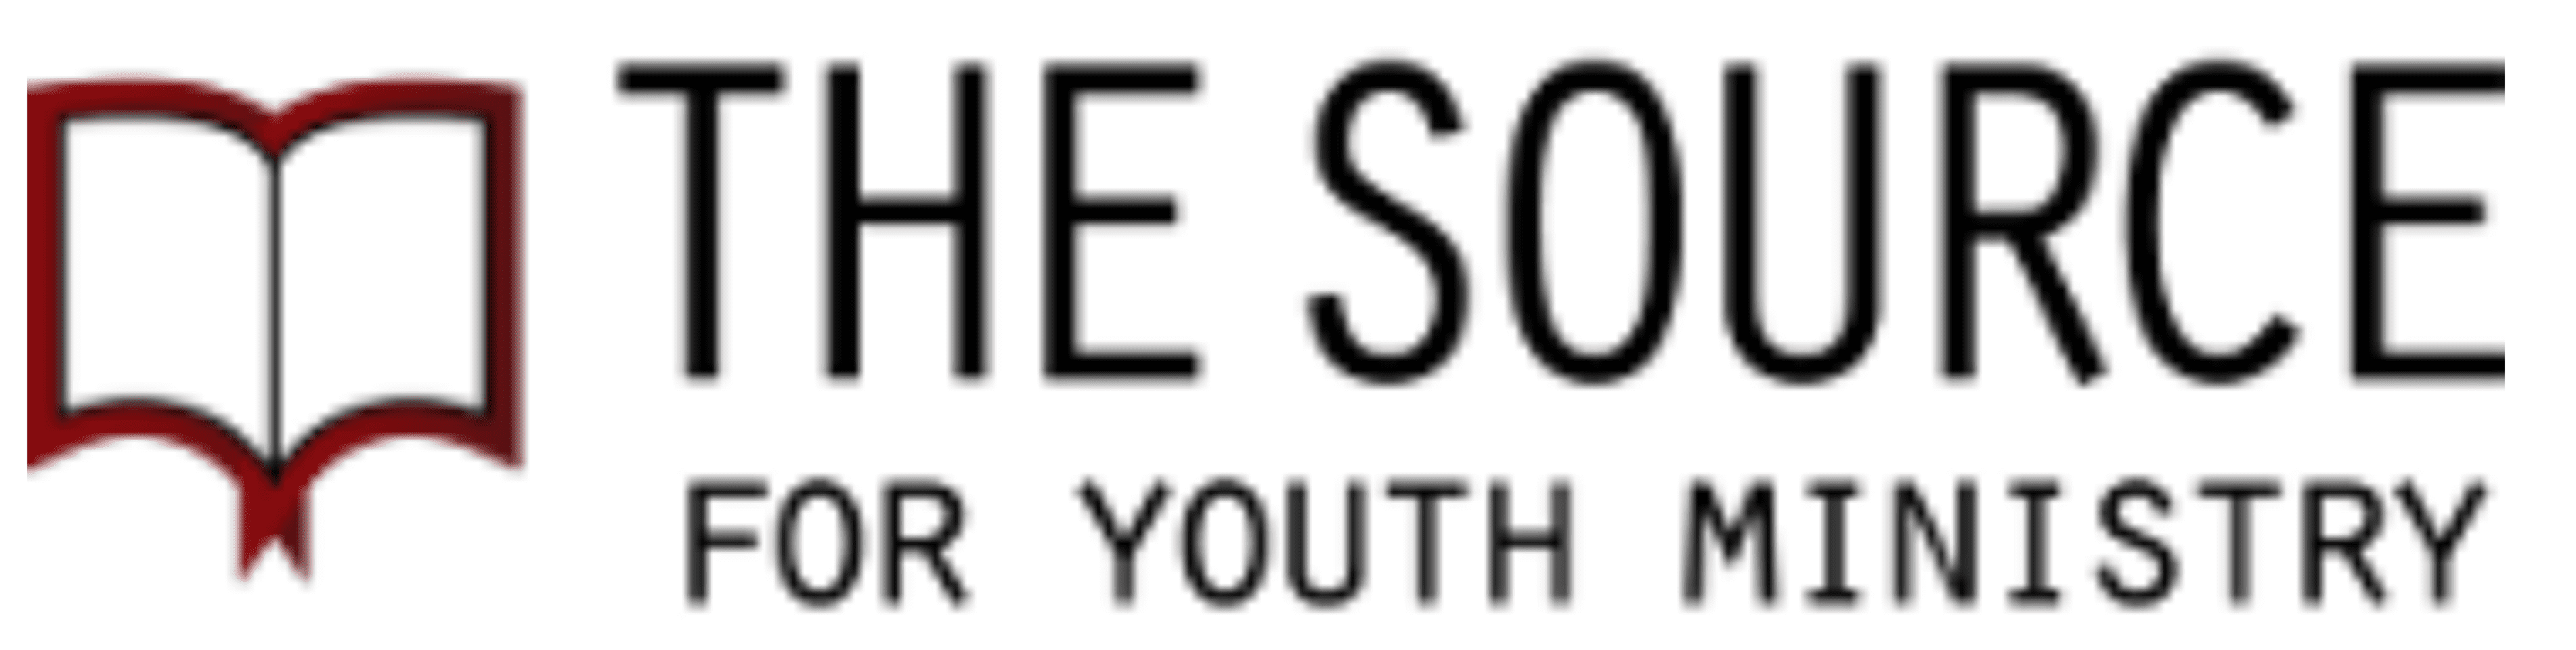 The Source Ministry logo.